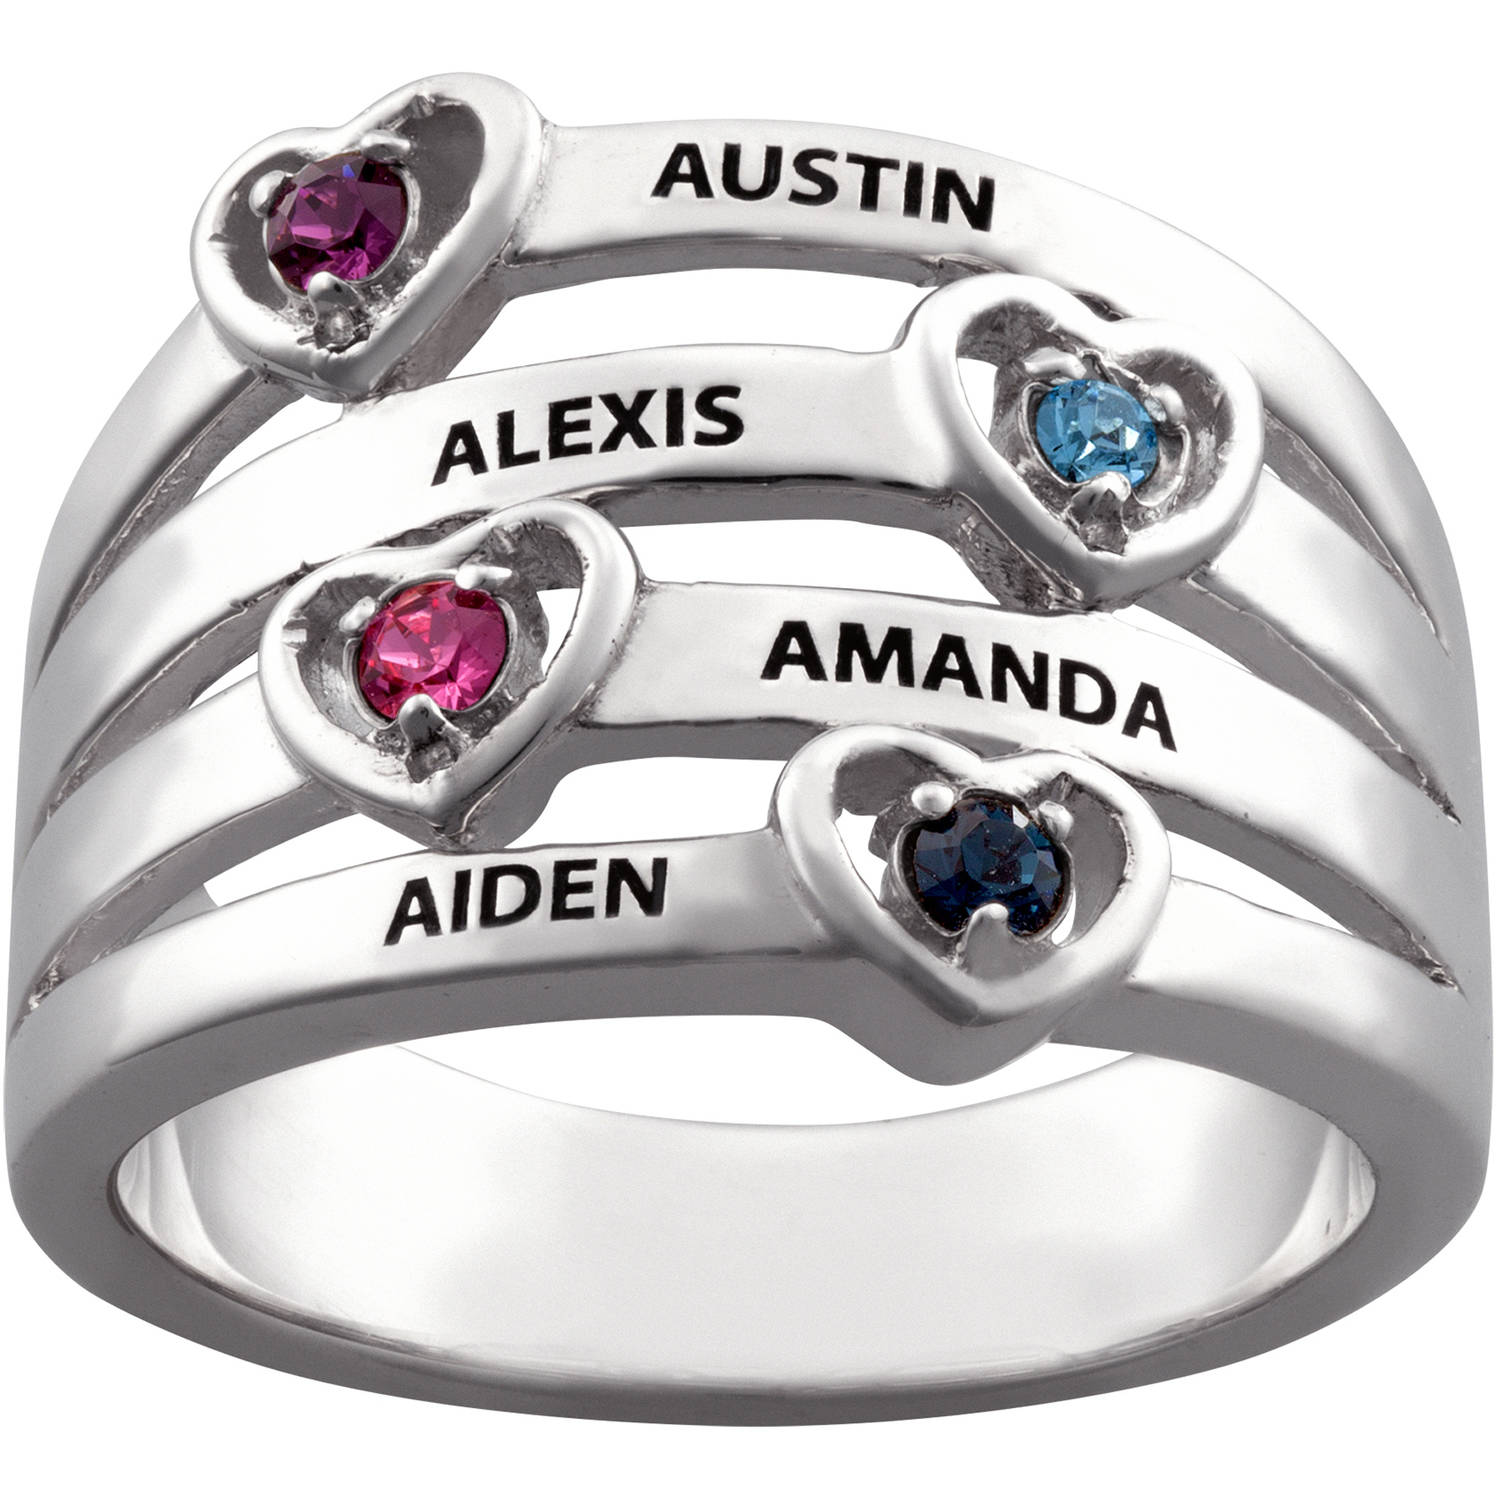 Family Jewelry Personalized Mother's Sterling Silver Name & Heart Birthstone Stack Ring